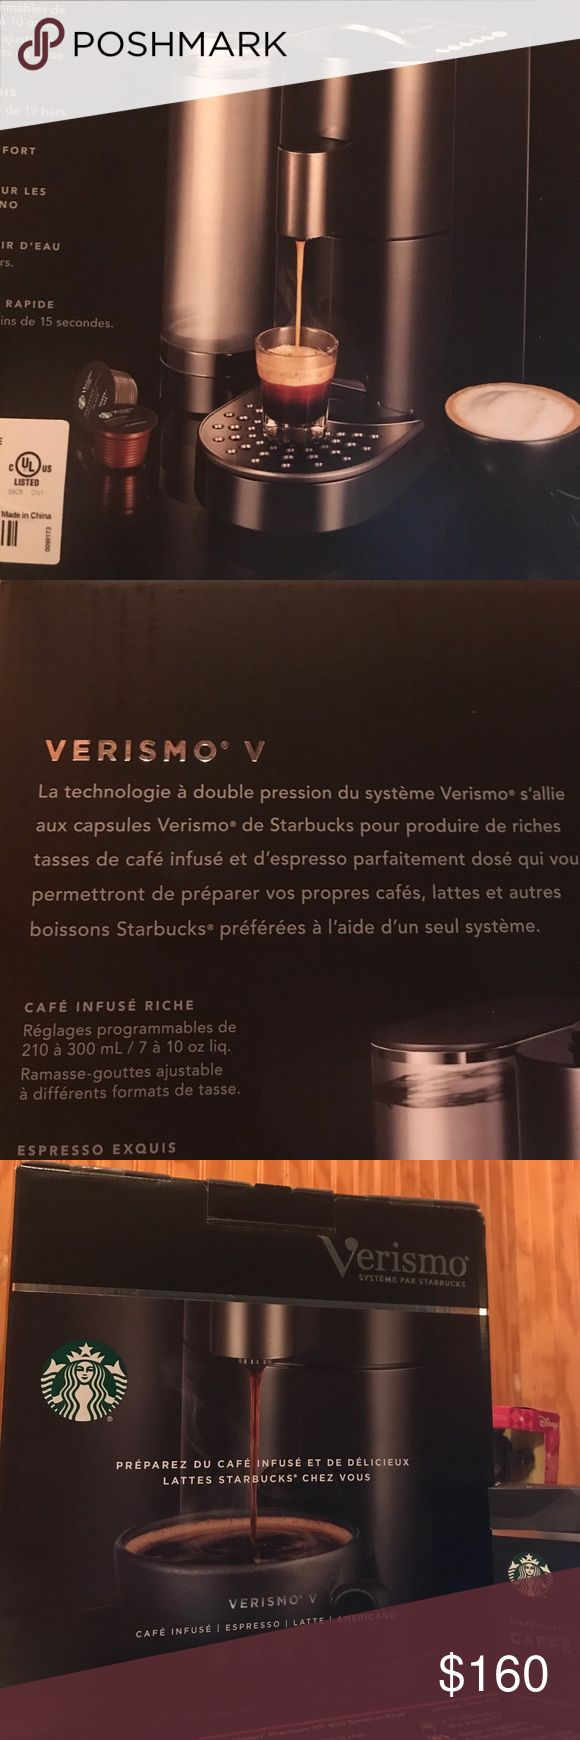 """Newest Starbucks Verismo V coffee machine system I got 2 (one for Christmas and one for birthday ) so I'm selling my extra. This is a new in the box current most updated version of the Starbucks Verismo coffee pod system """" Verismo V"""". """"""""The Verismo System's unique Dual-pressure technology works with Verismo pods to brew rich Starbucks coffee and pull the perfect shot of espresso --so you can make your favorite Starbucks coffee, lattes and more, with one machine. """""""". New never opened for the…"""